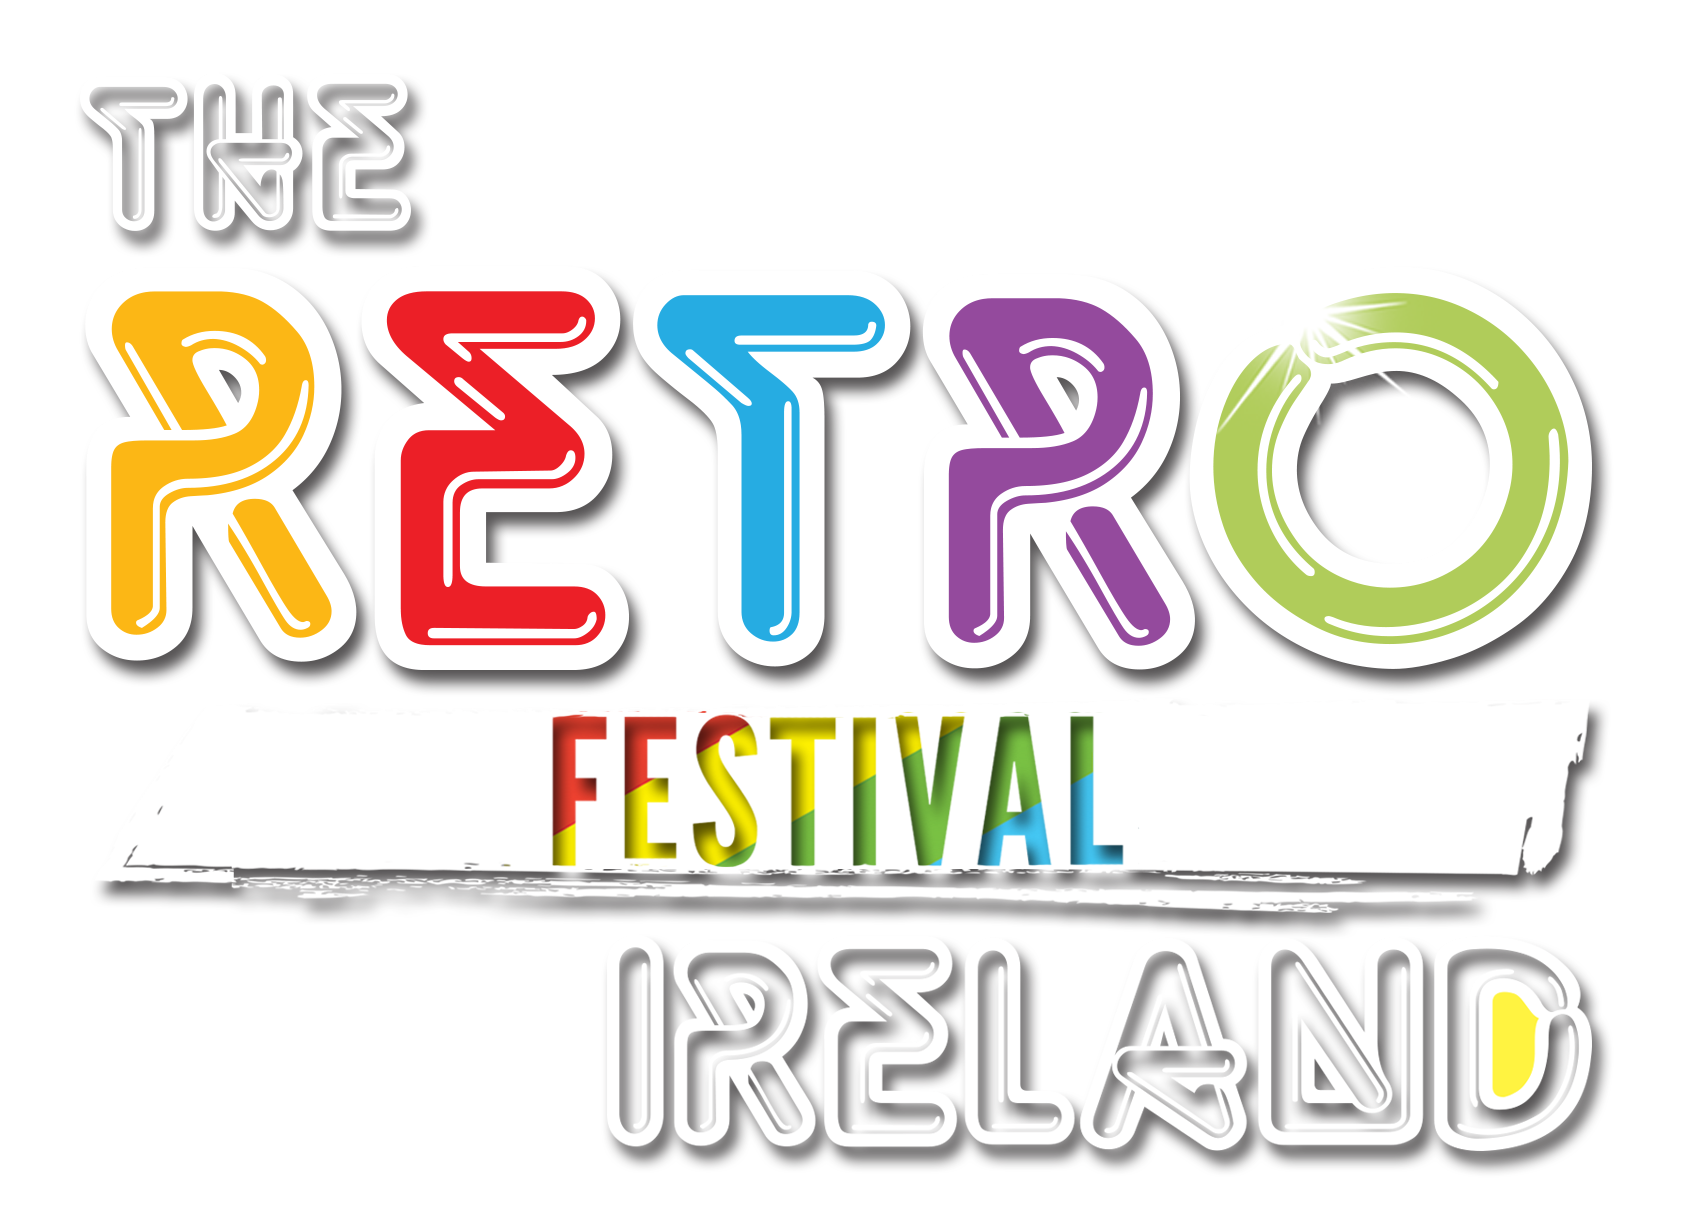 The Retro Festival Ireland